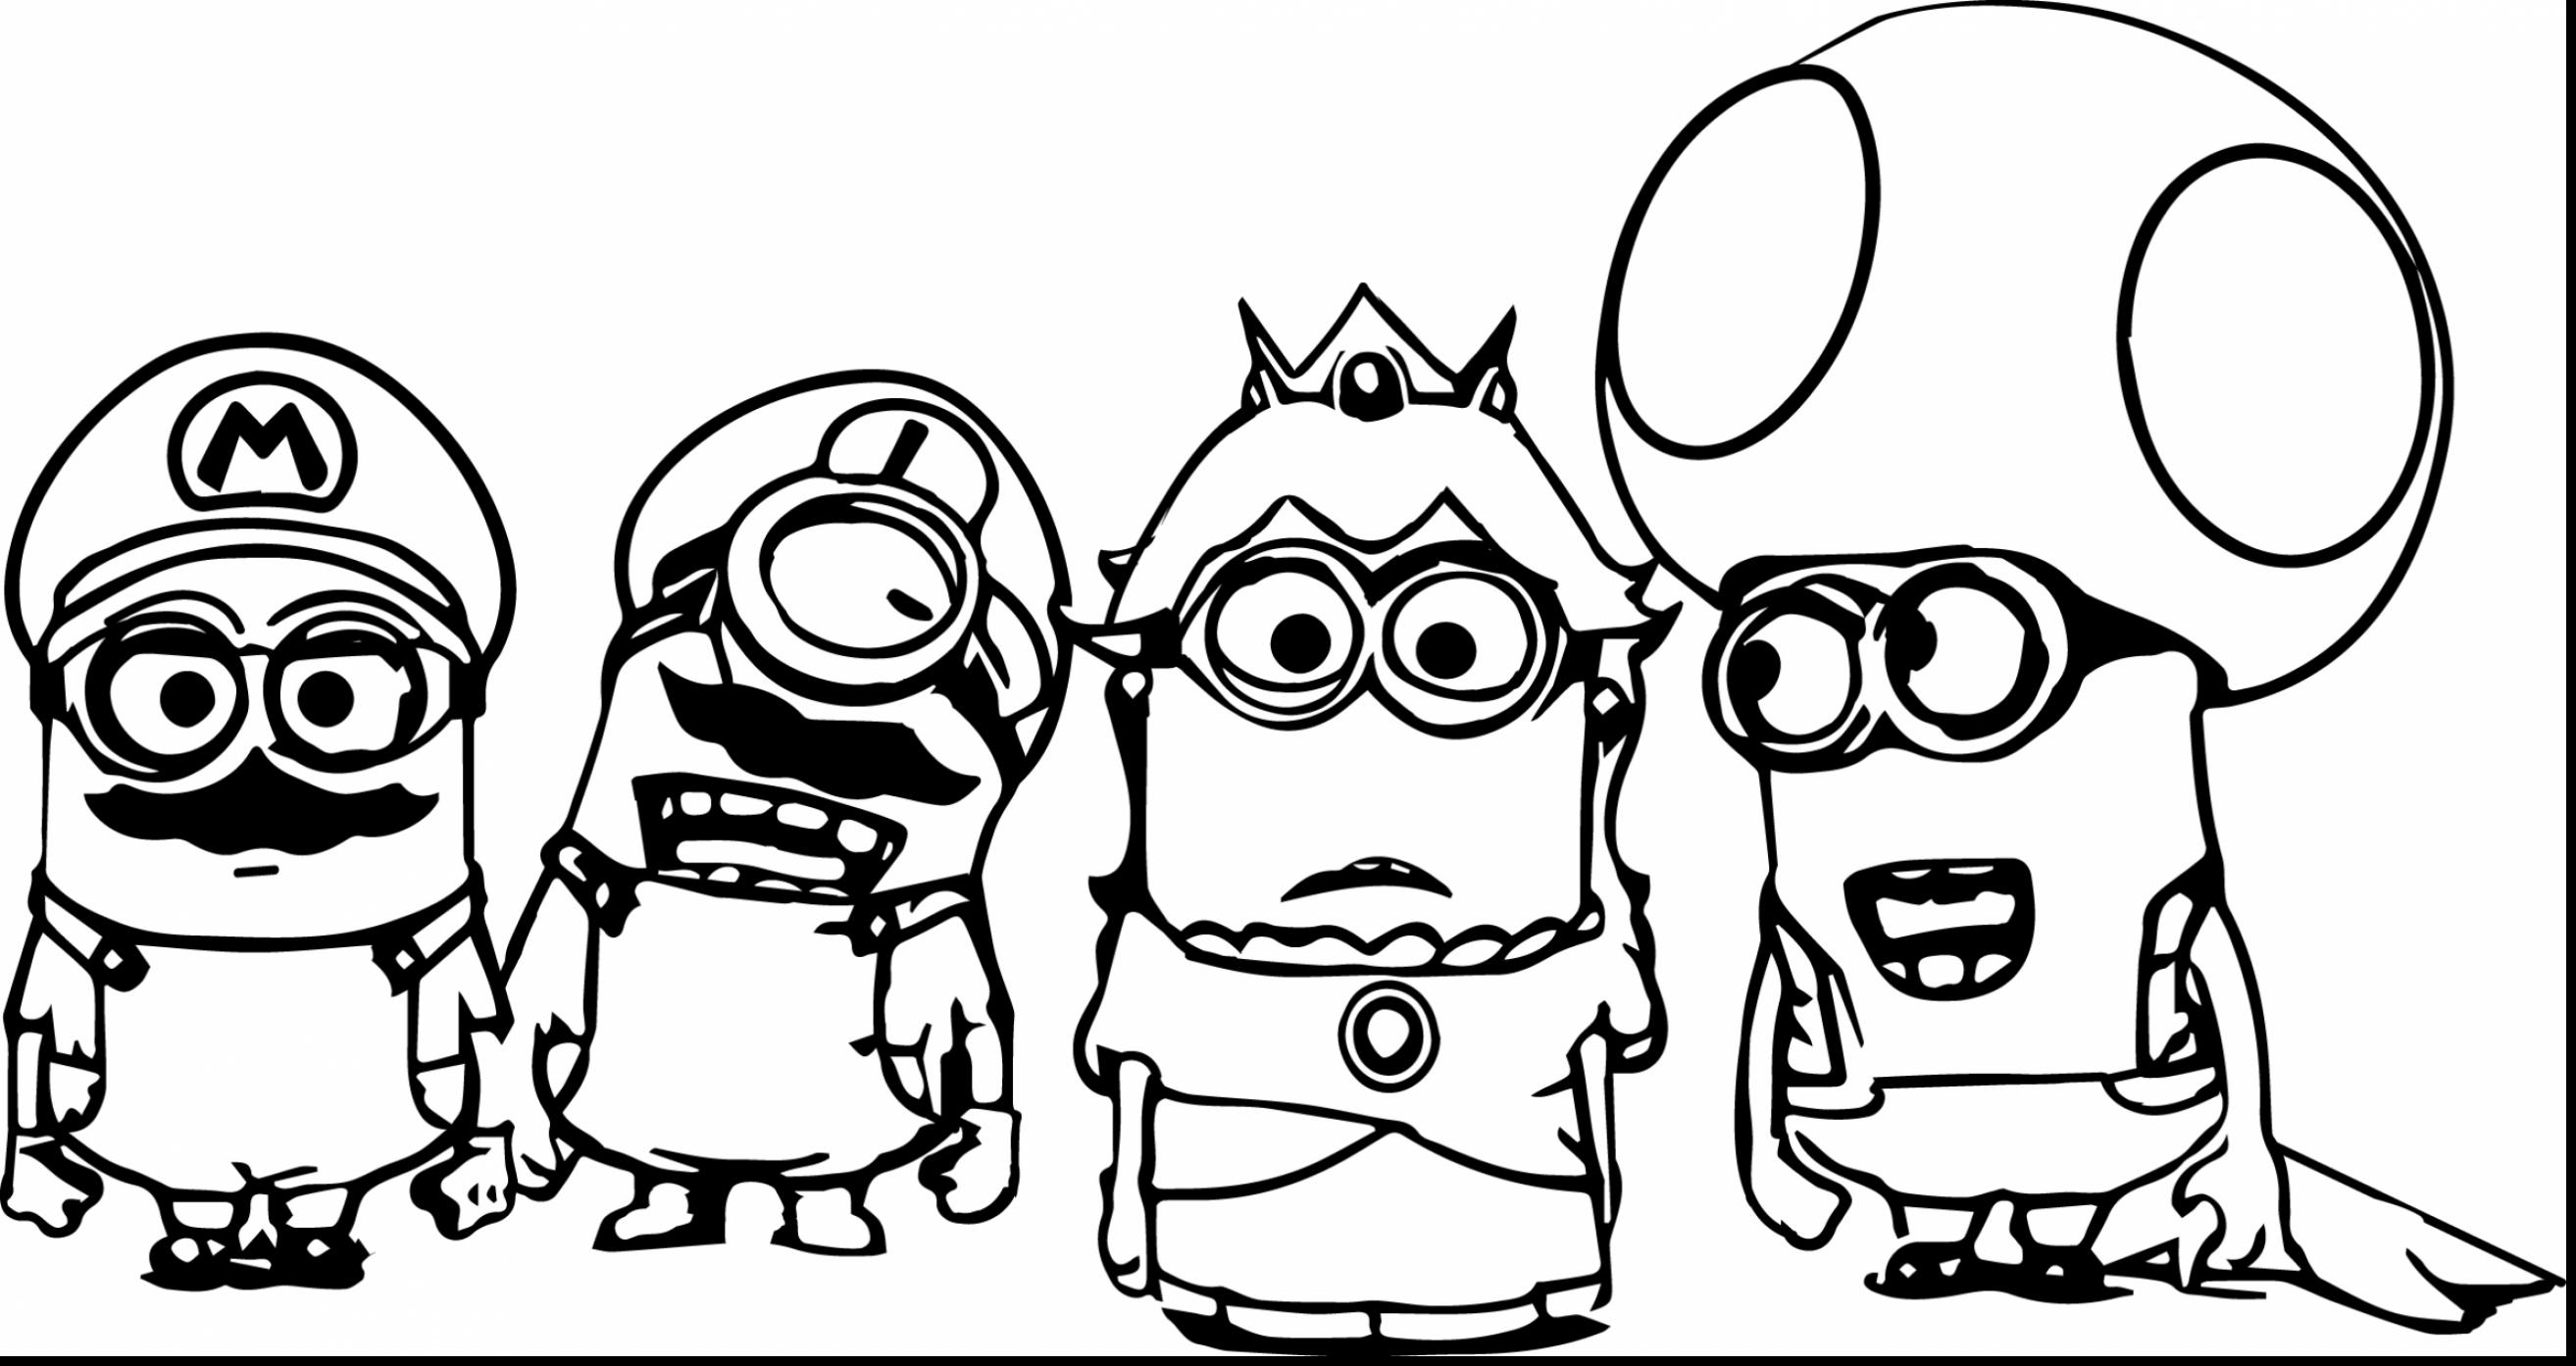 2627x1393 Free Minion Coloring Pages Magnificent Minion Printable Coloring